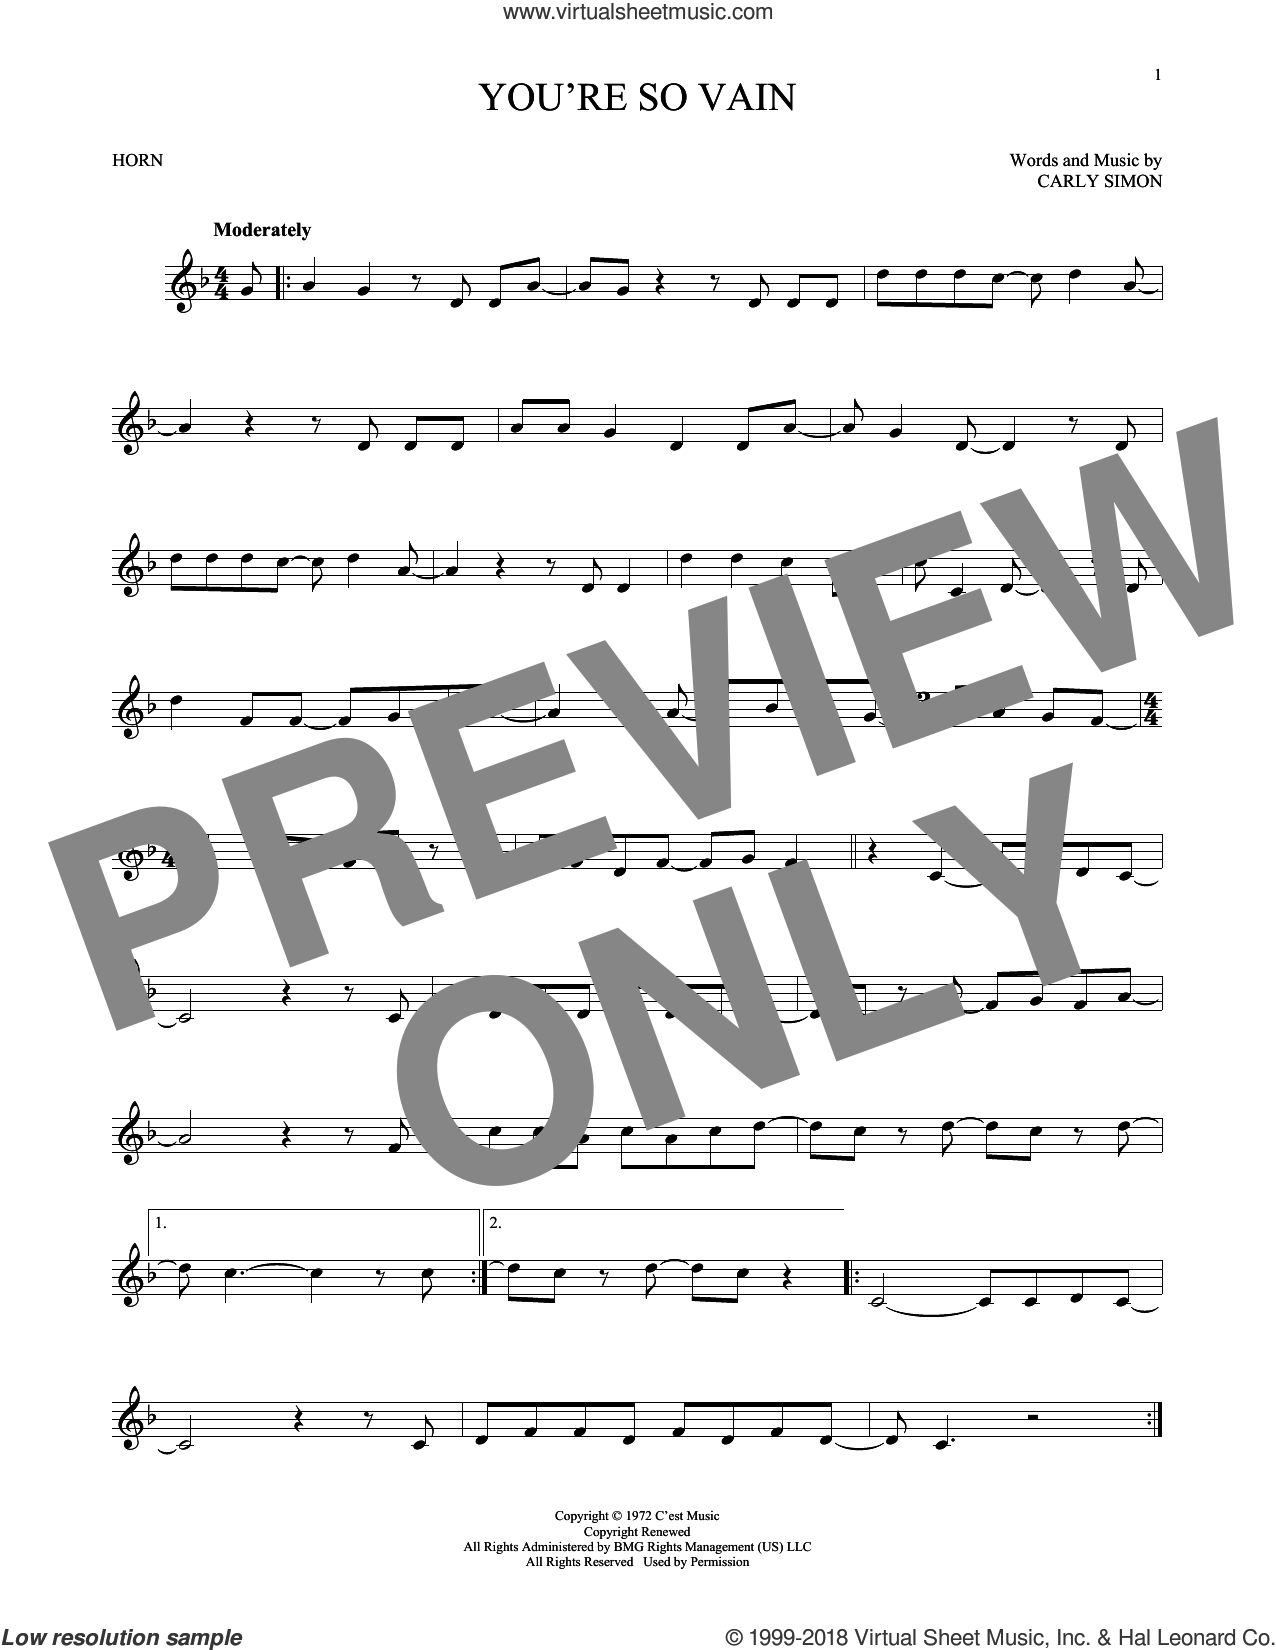 You're So Vain sheet music for horn solo by Carly Simon, intermediate skill level